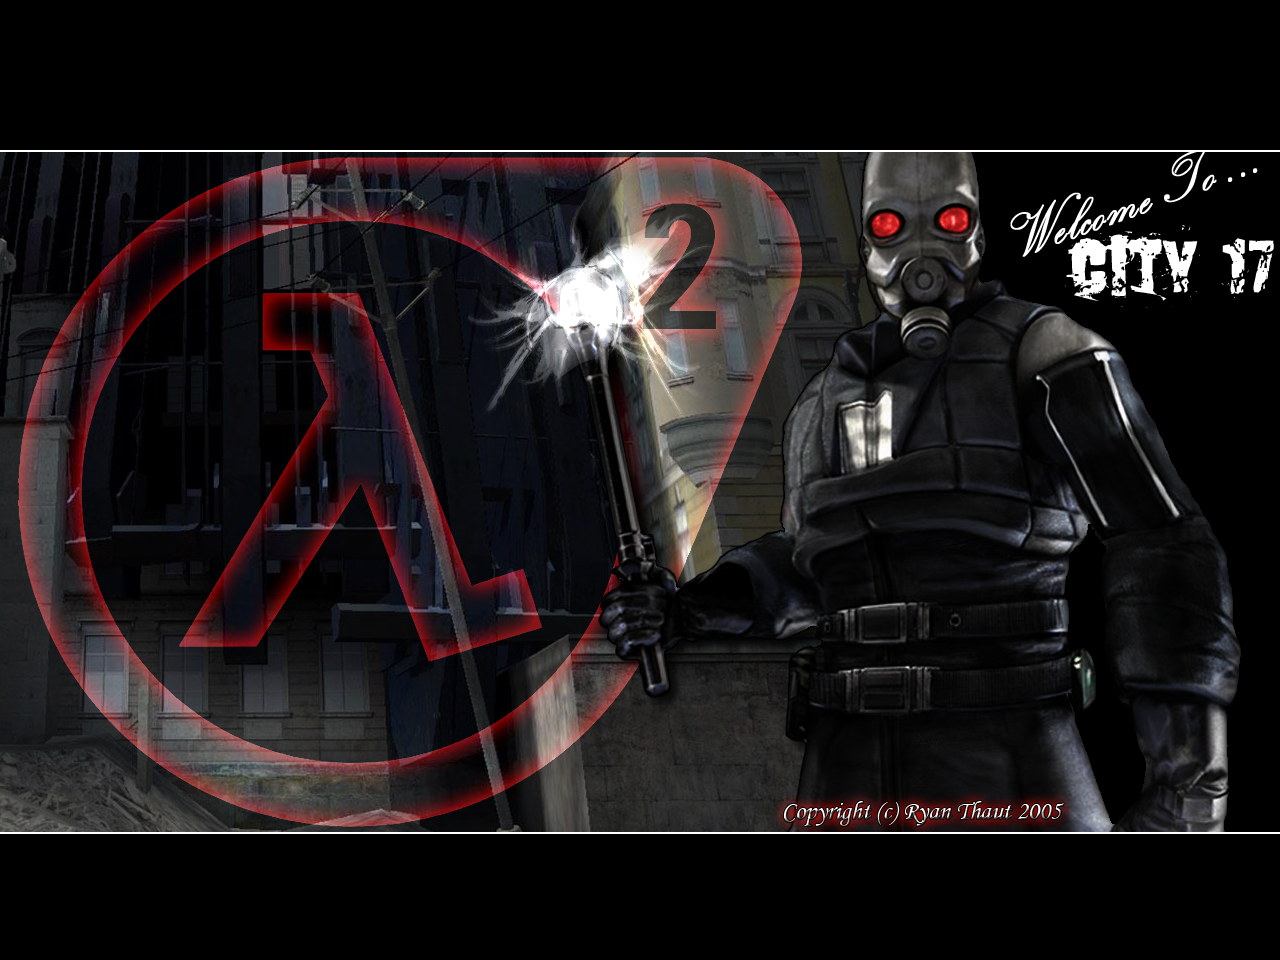 Half Life 2 Combine Wallpaper: Half-Life 2 Combine By Rthaut On DeviantArt